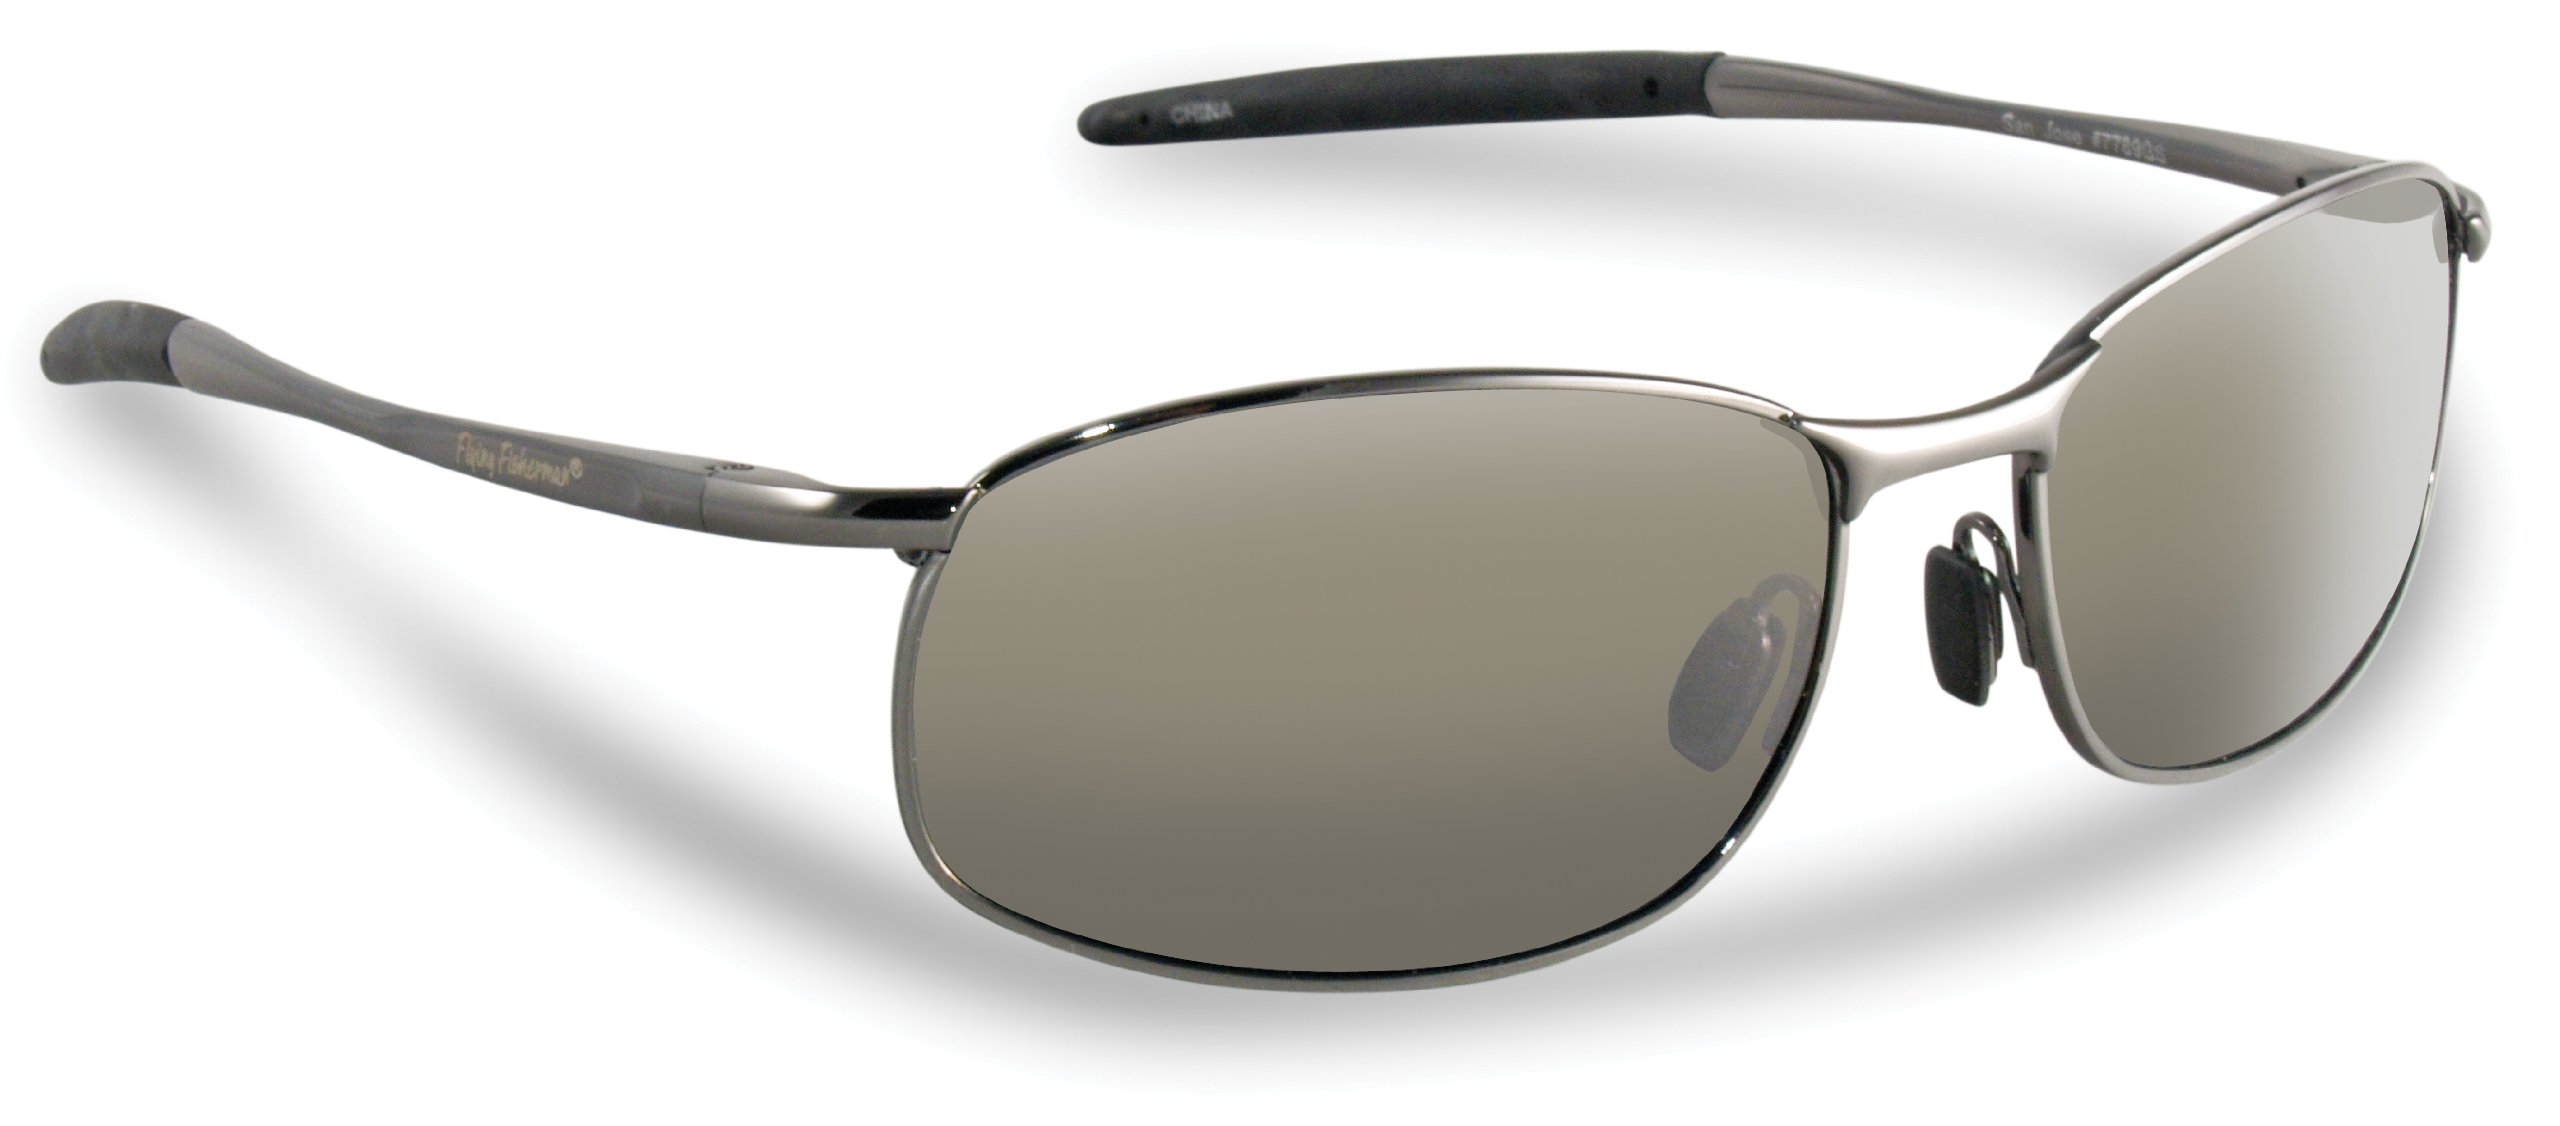 f0caec1bfa Galleon - Flying Fisherman 103578 San Jose Polarized Sunglasses (Gunmetal  Frame